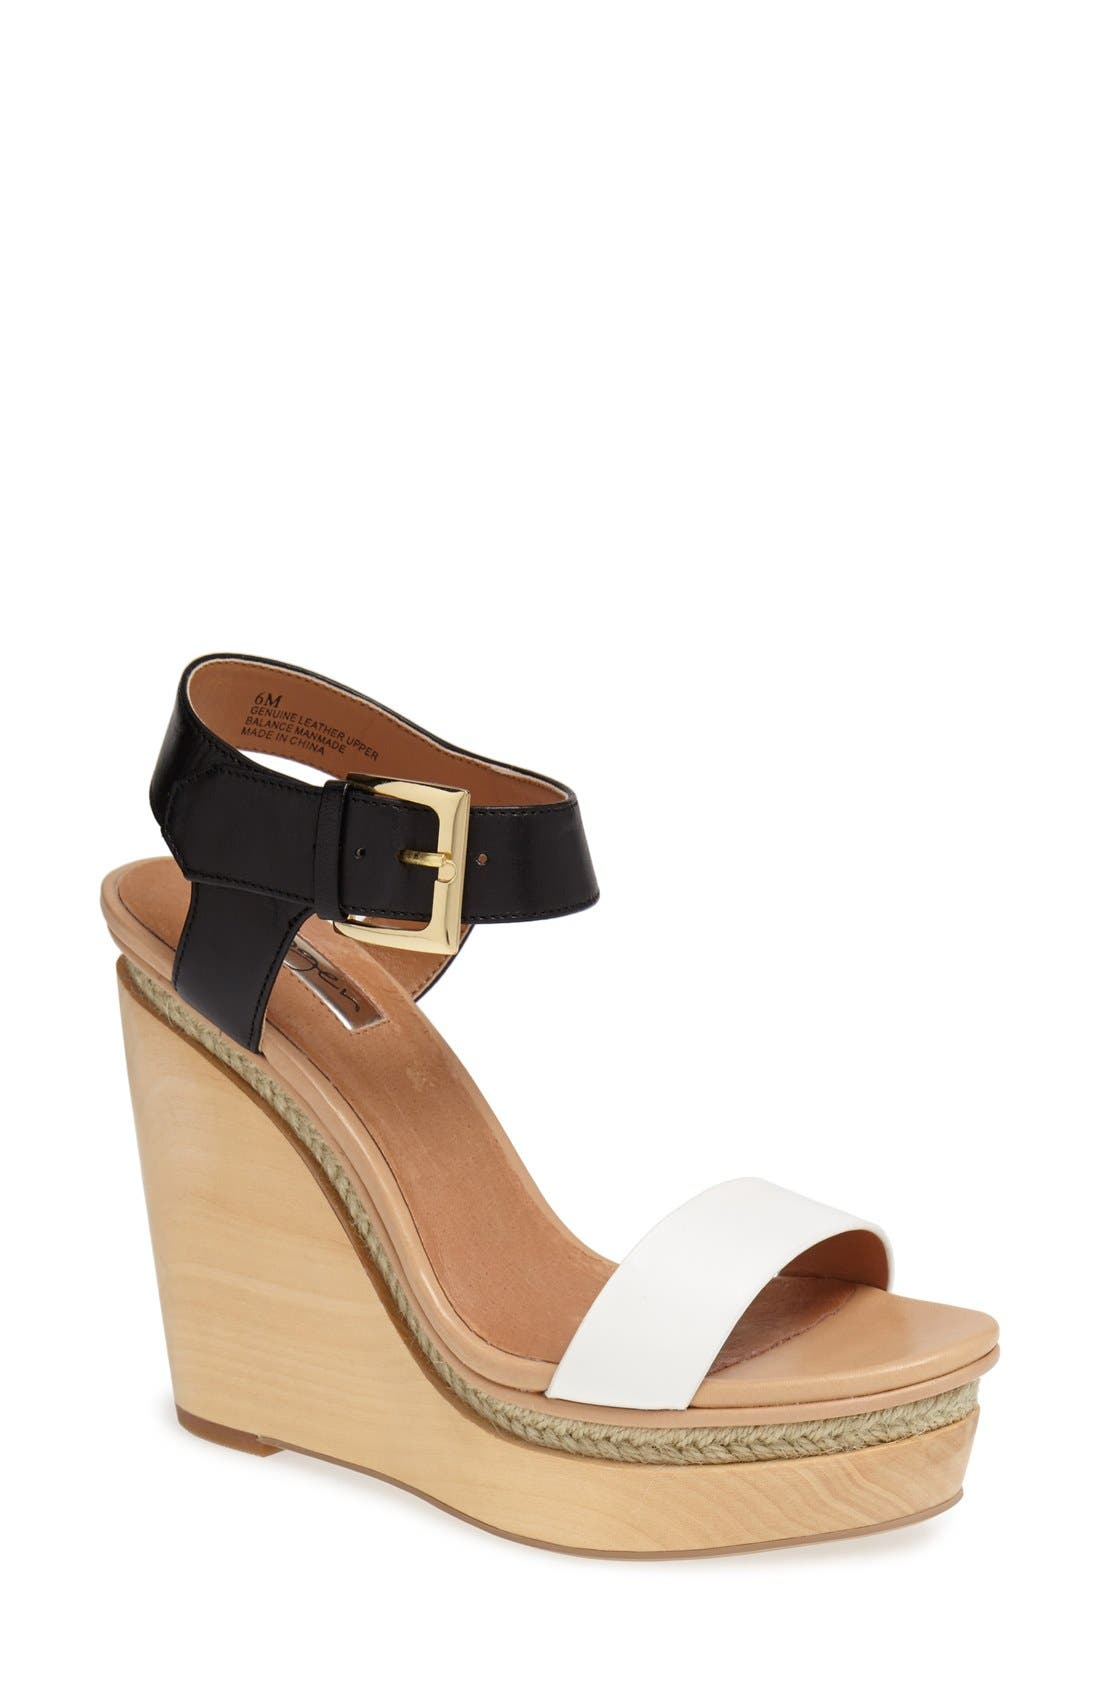 Alternate Image 1 Selected - HALOGEN JANAE WEDGE SANDAL